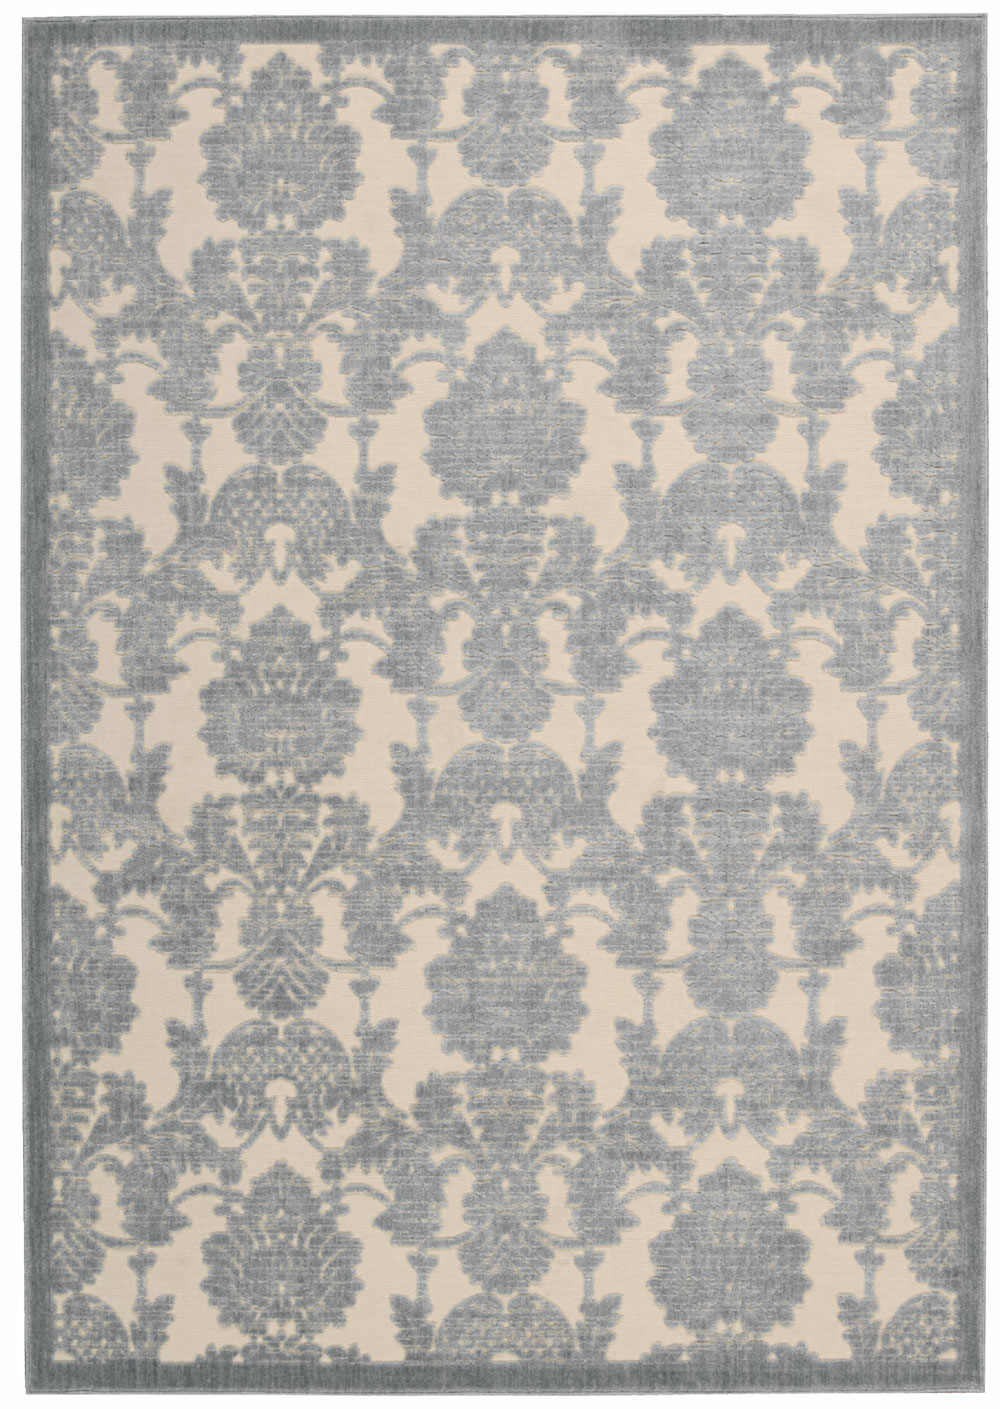 Nourison GRAPHIC ILLUSIONS GIL03 IV/LTB Rug